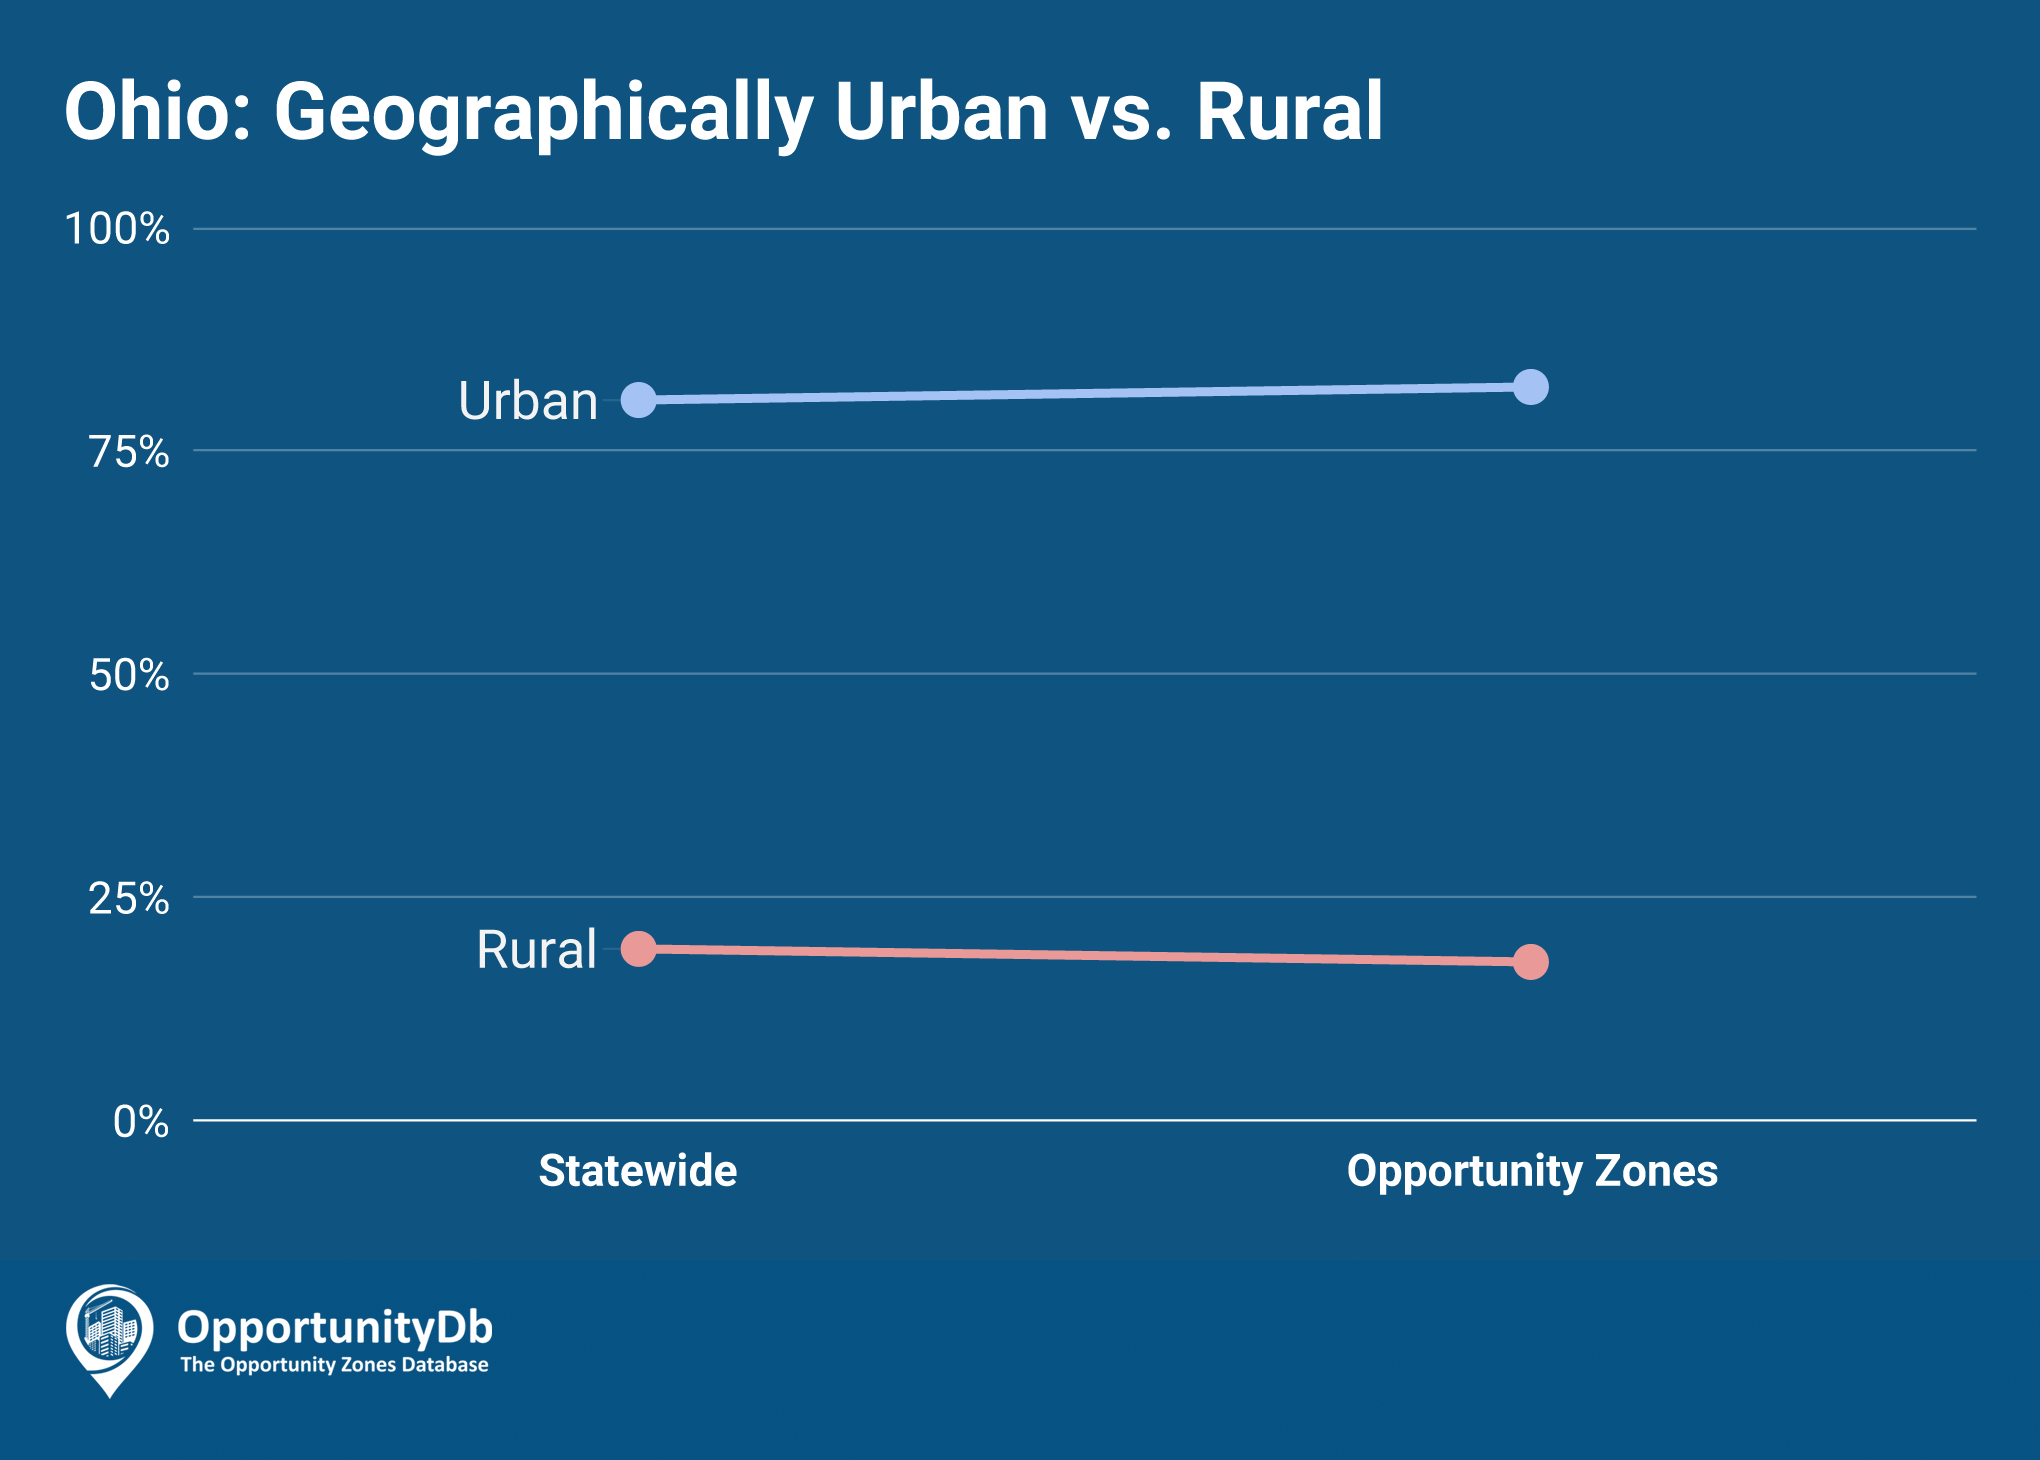 Urban vs. Rural in Ohio Opportunity Zones